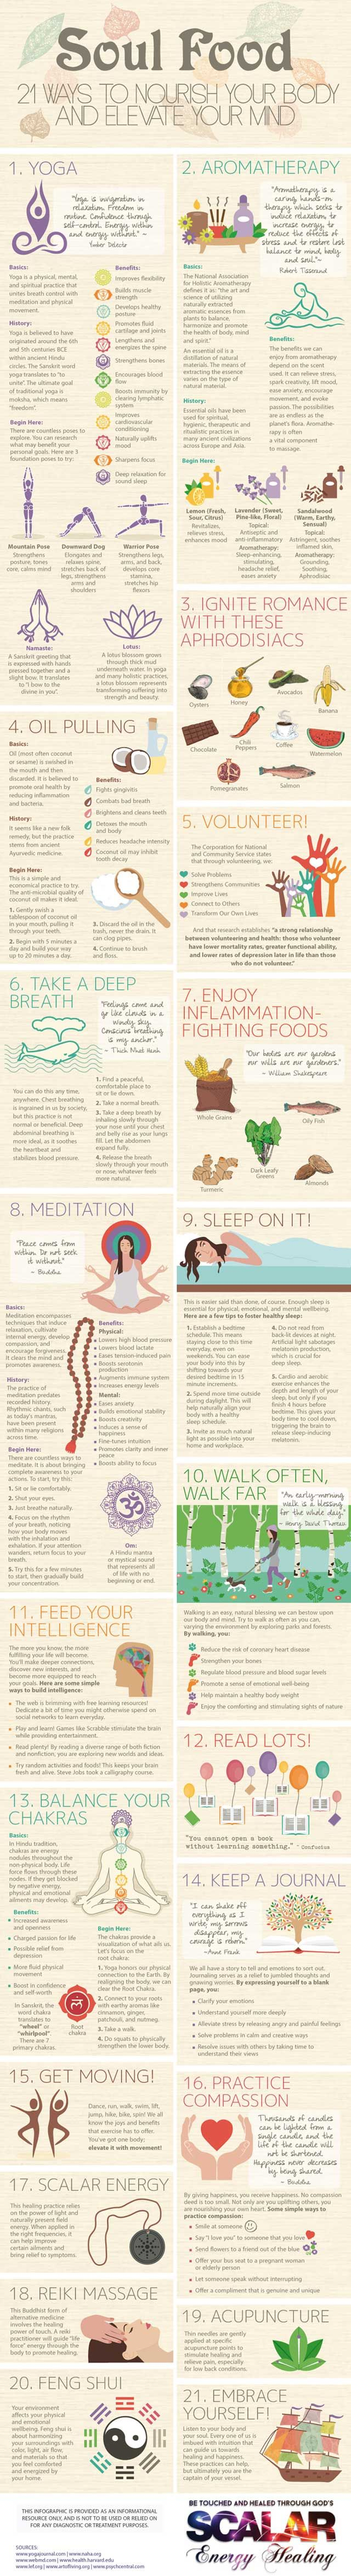 How to Learn to Manage Stress! This is a great infographic with a lot of tips + tricks on stress management.